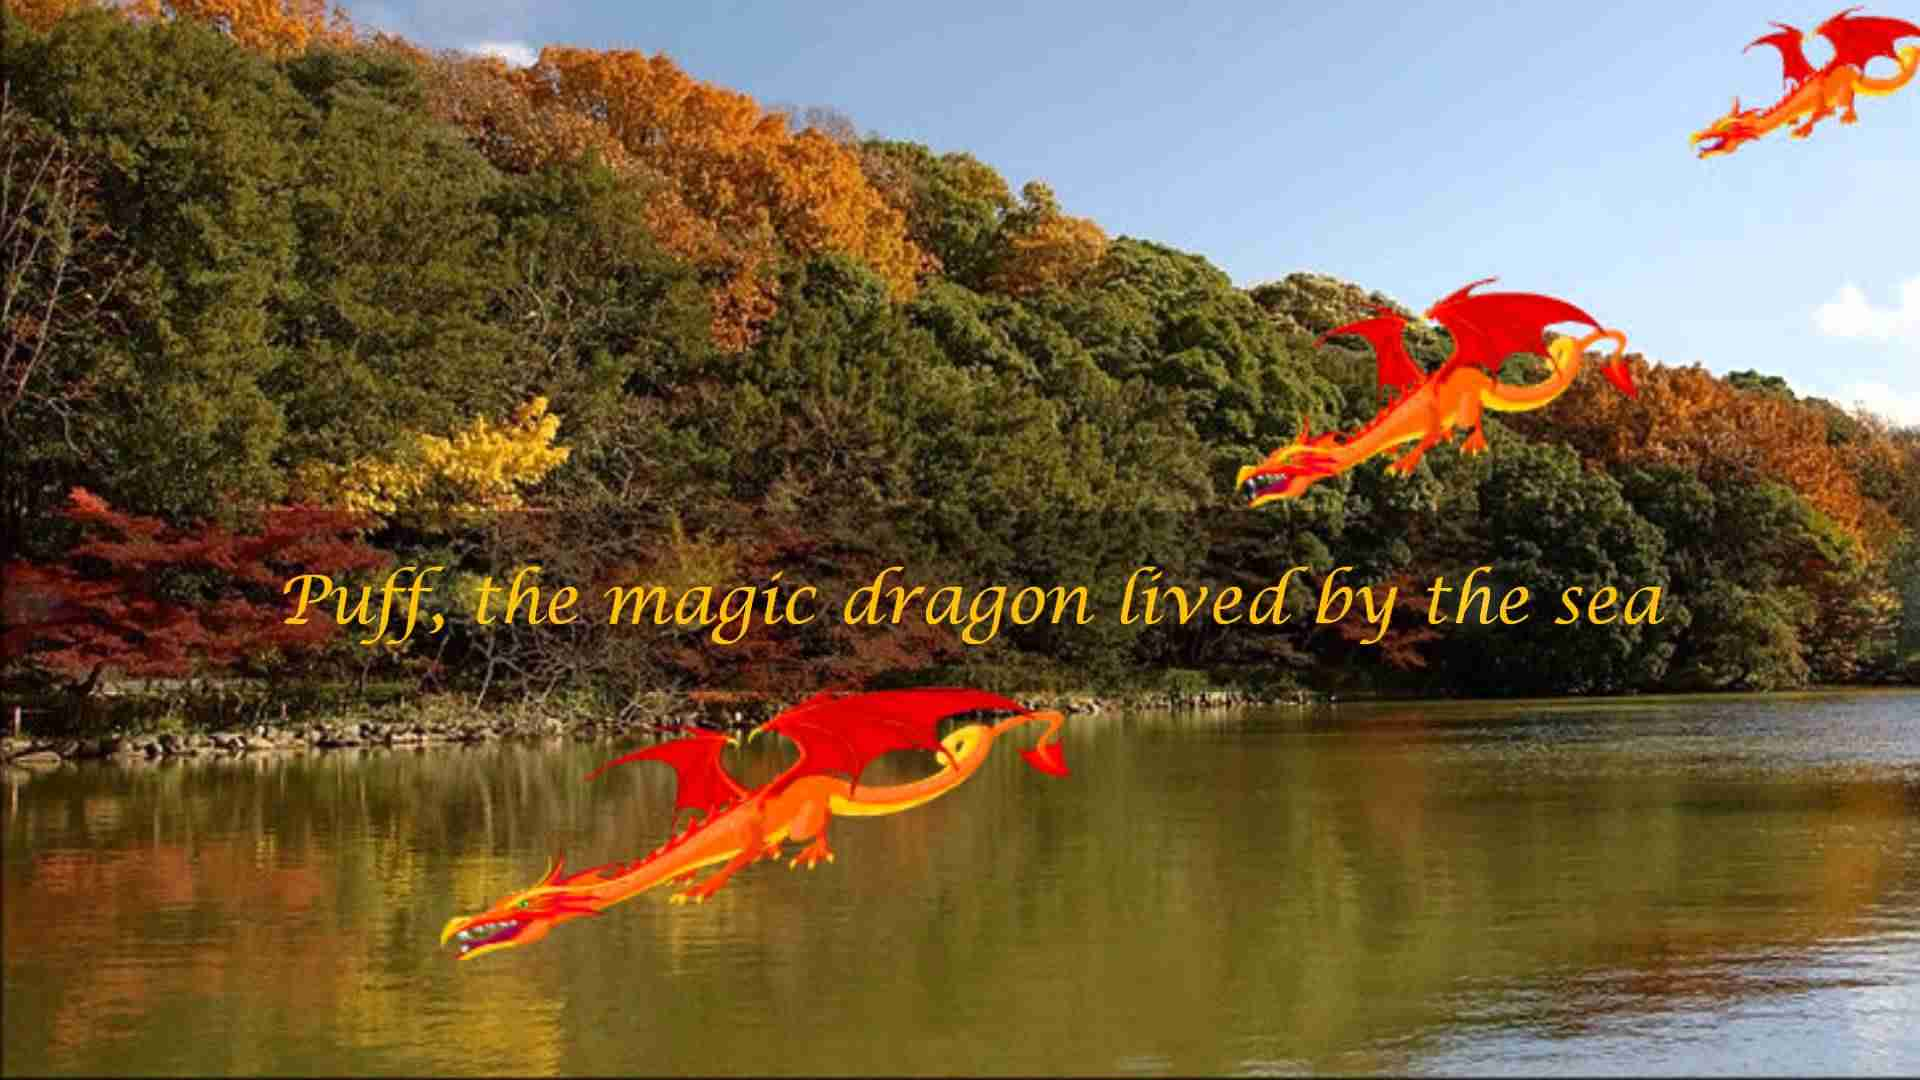 Peter Paul & Mary - Puff The Magic Dragon (with Lyrics) - YouTube